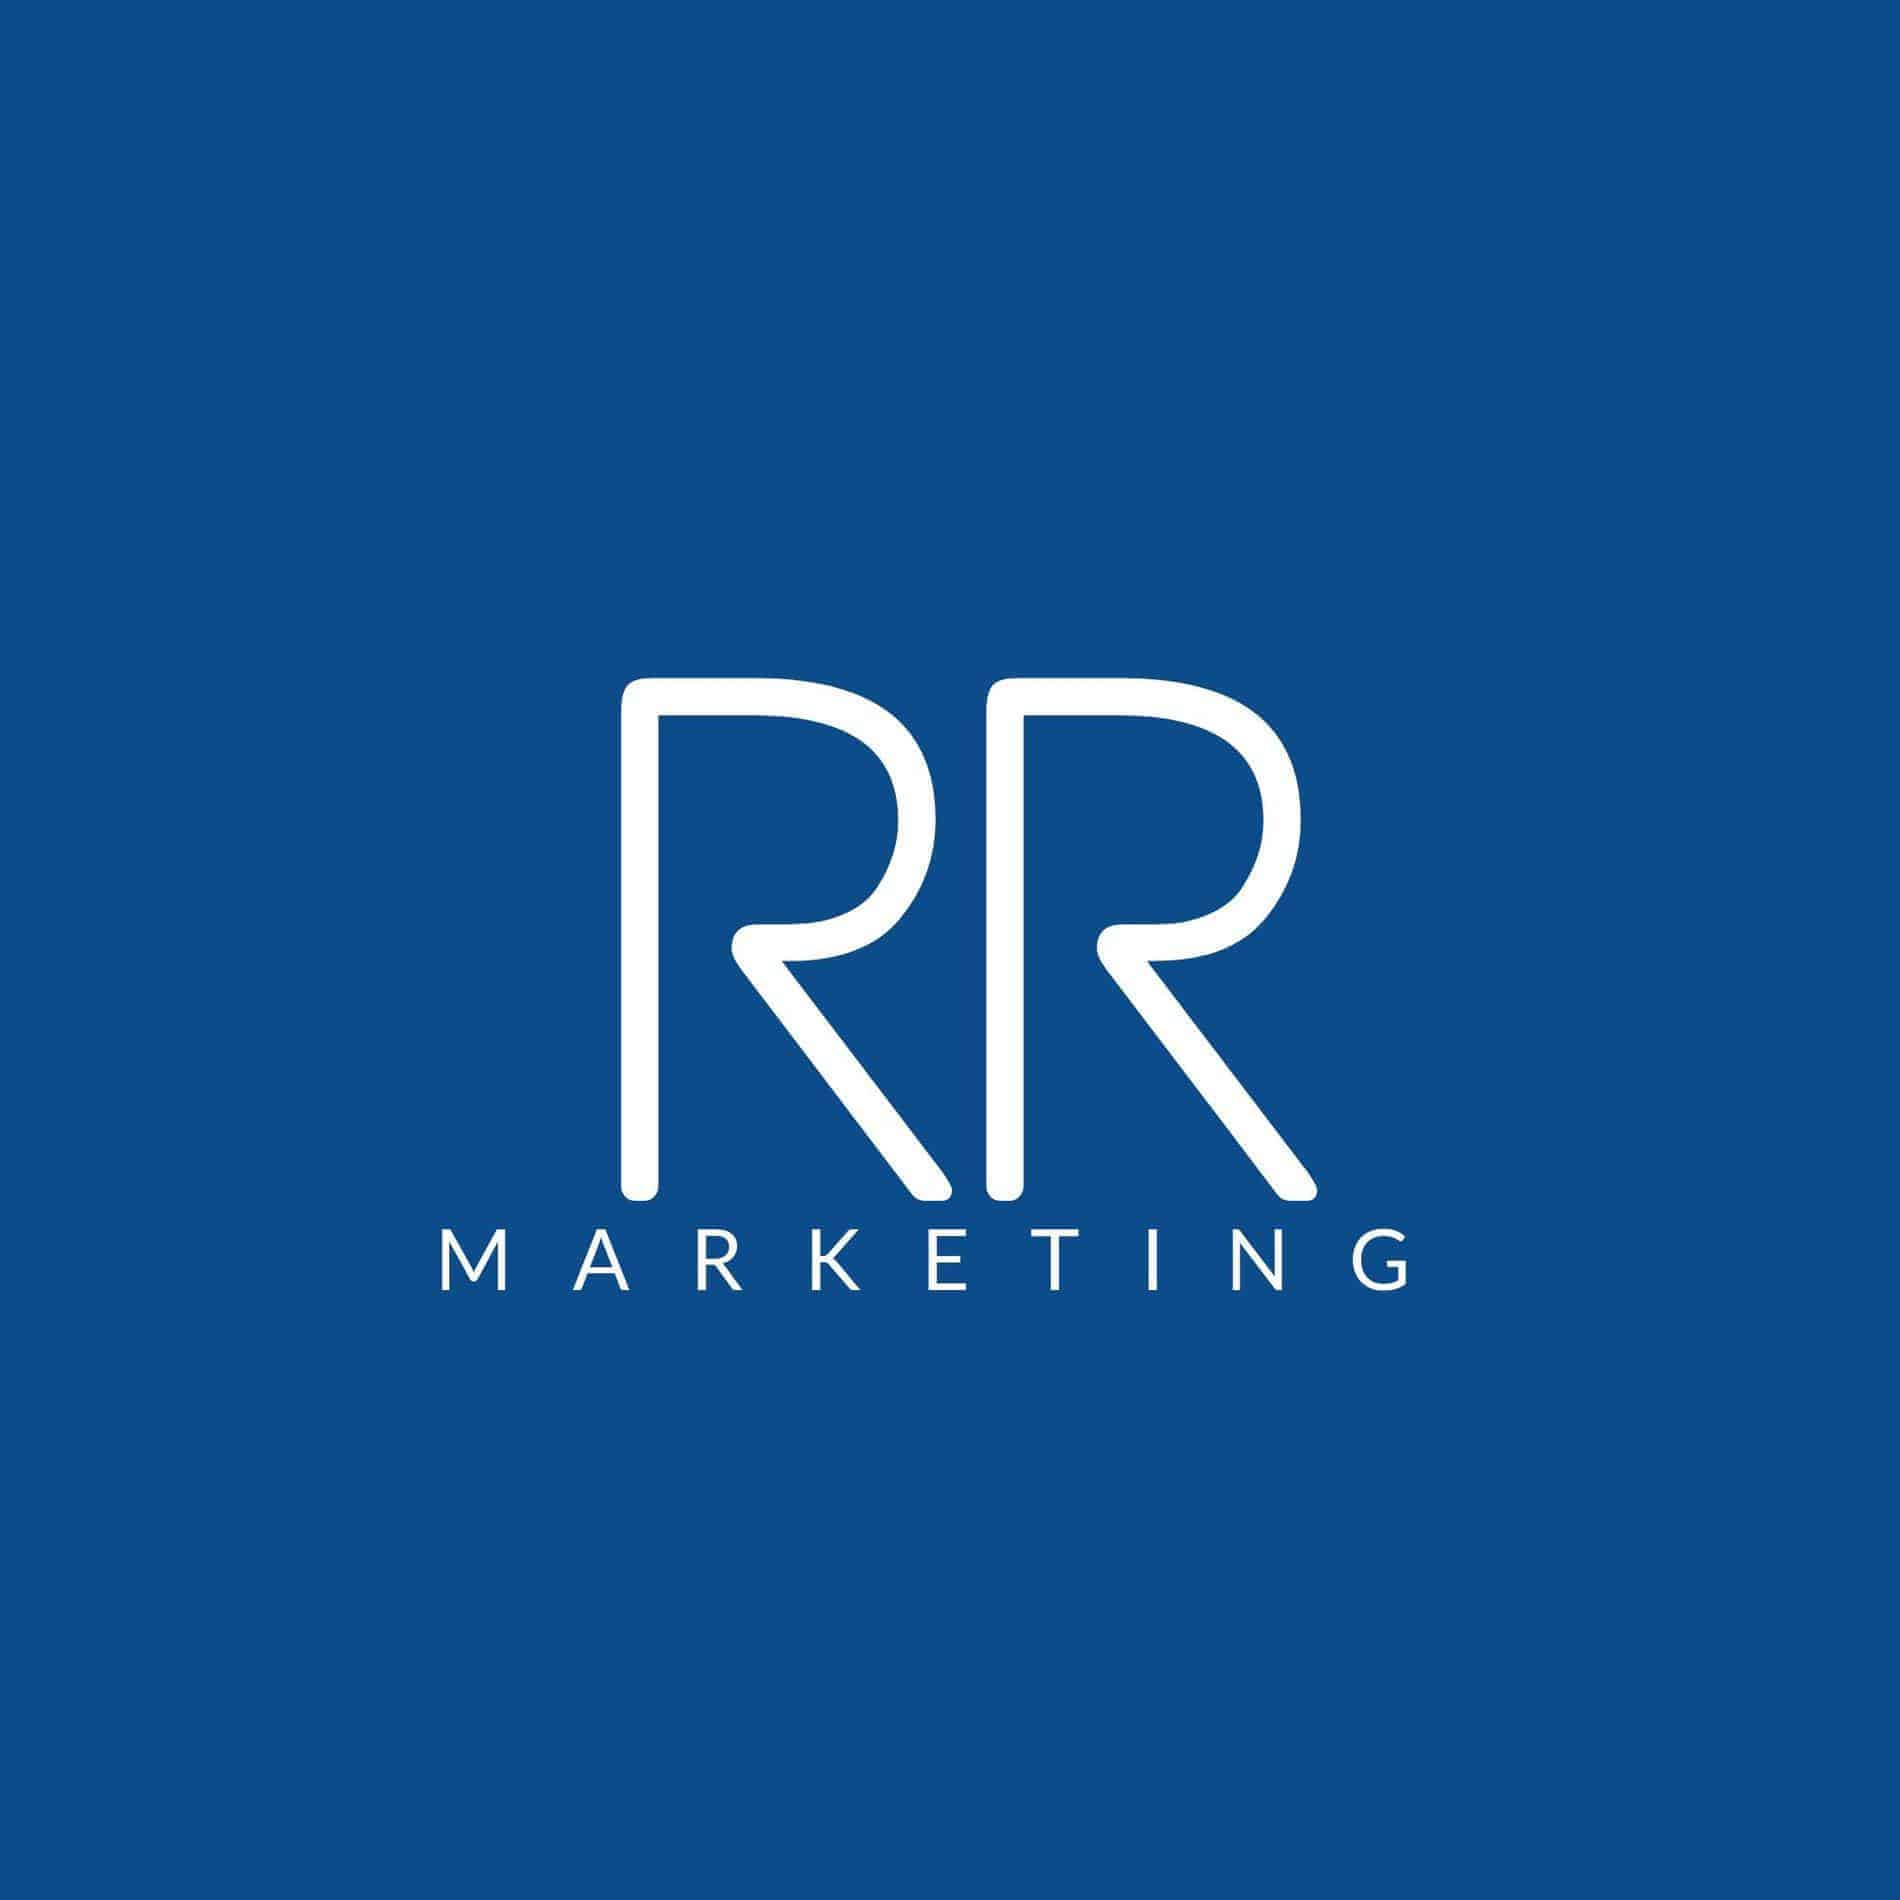 Logo_RRmarketing1